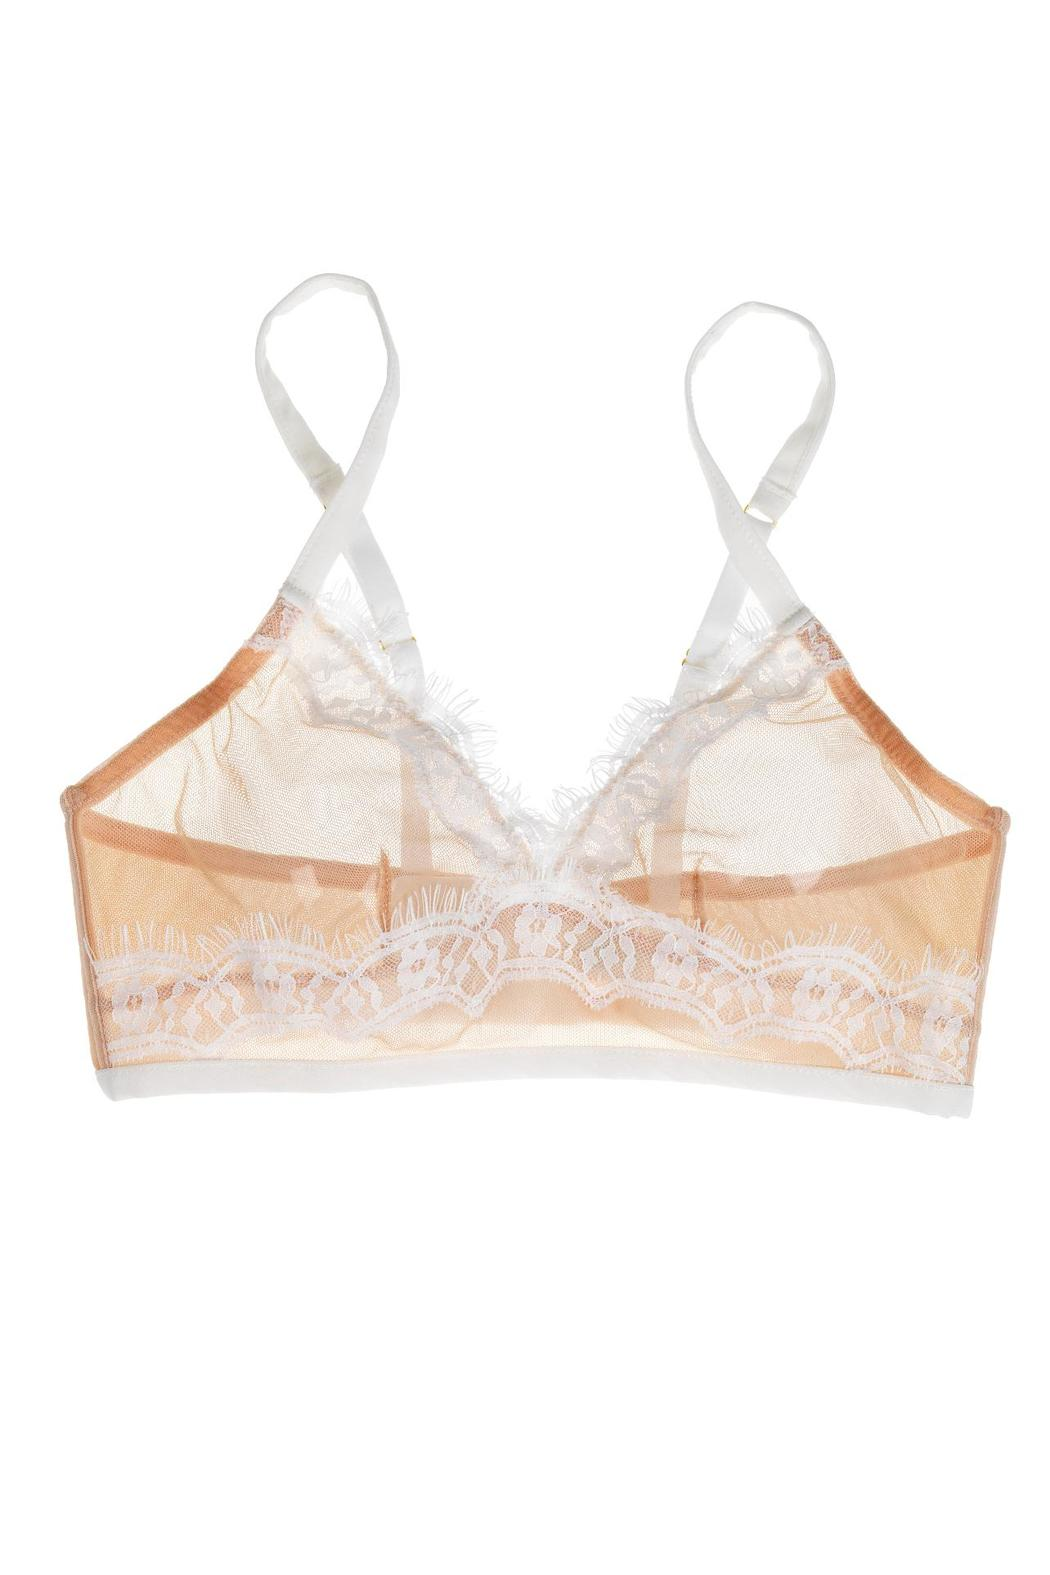 Mimi Holliday Longline Triangle Bralette - Side Cropped Image